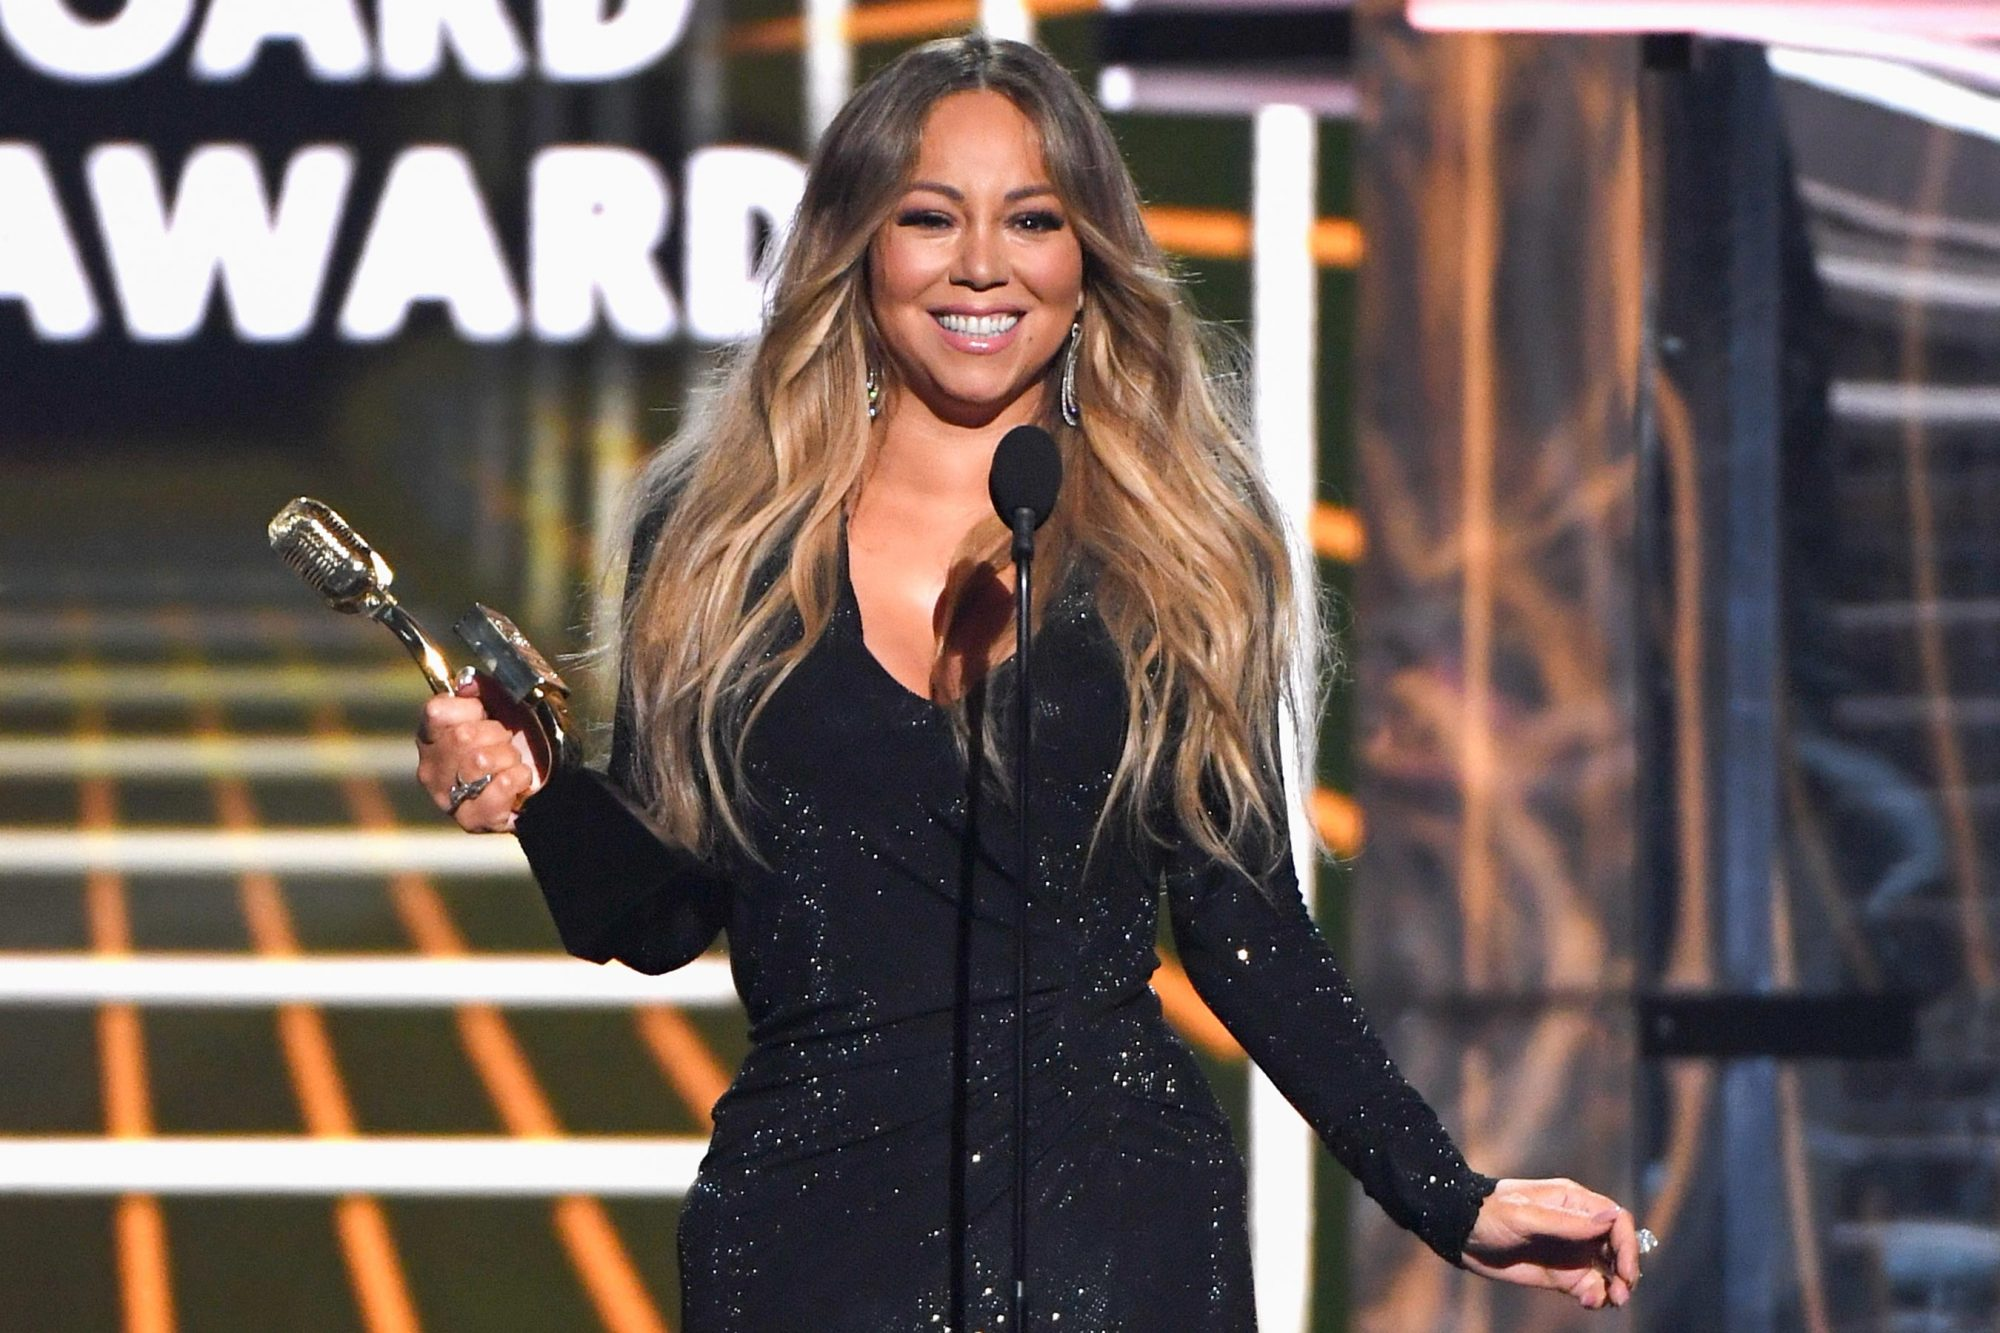 LAS VEGAS, NV - MAY 01: Mariah Carey accepts the Icon Award onstage during the 2019 Billboard Music Awards at MGM Grand Garden Arena on May 1, 2019 in Las Vegas, Nevada. (Photo by Ethan Miller/Getty Images)